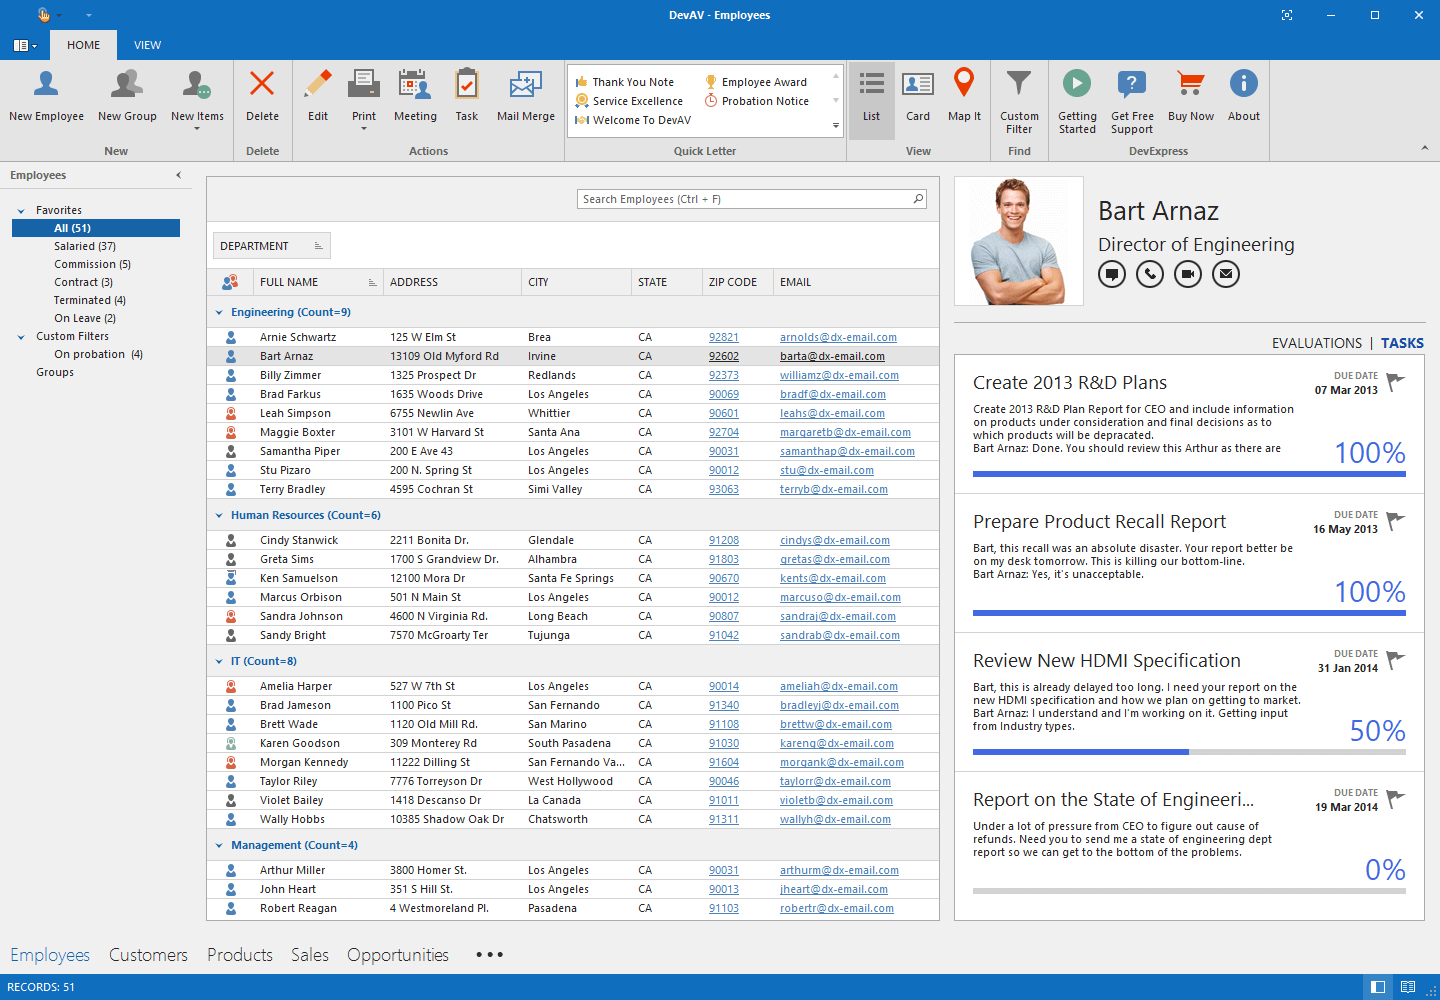 Outlook-inspired App with DevExpress WinForms Grid